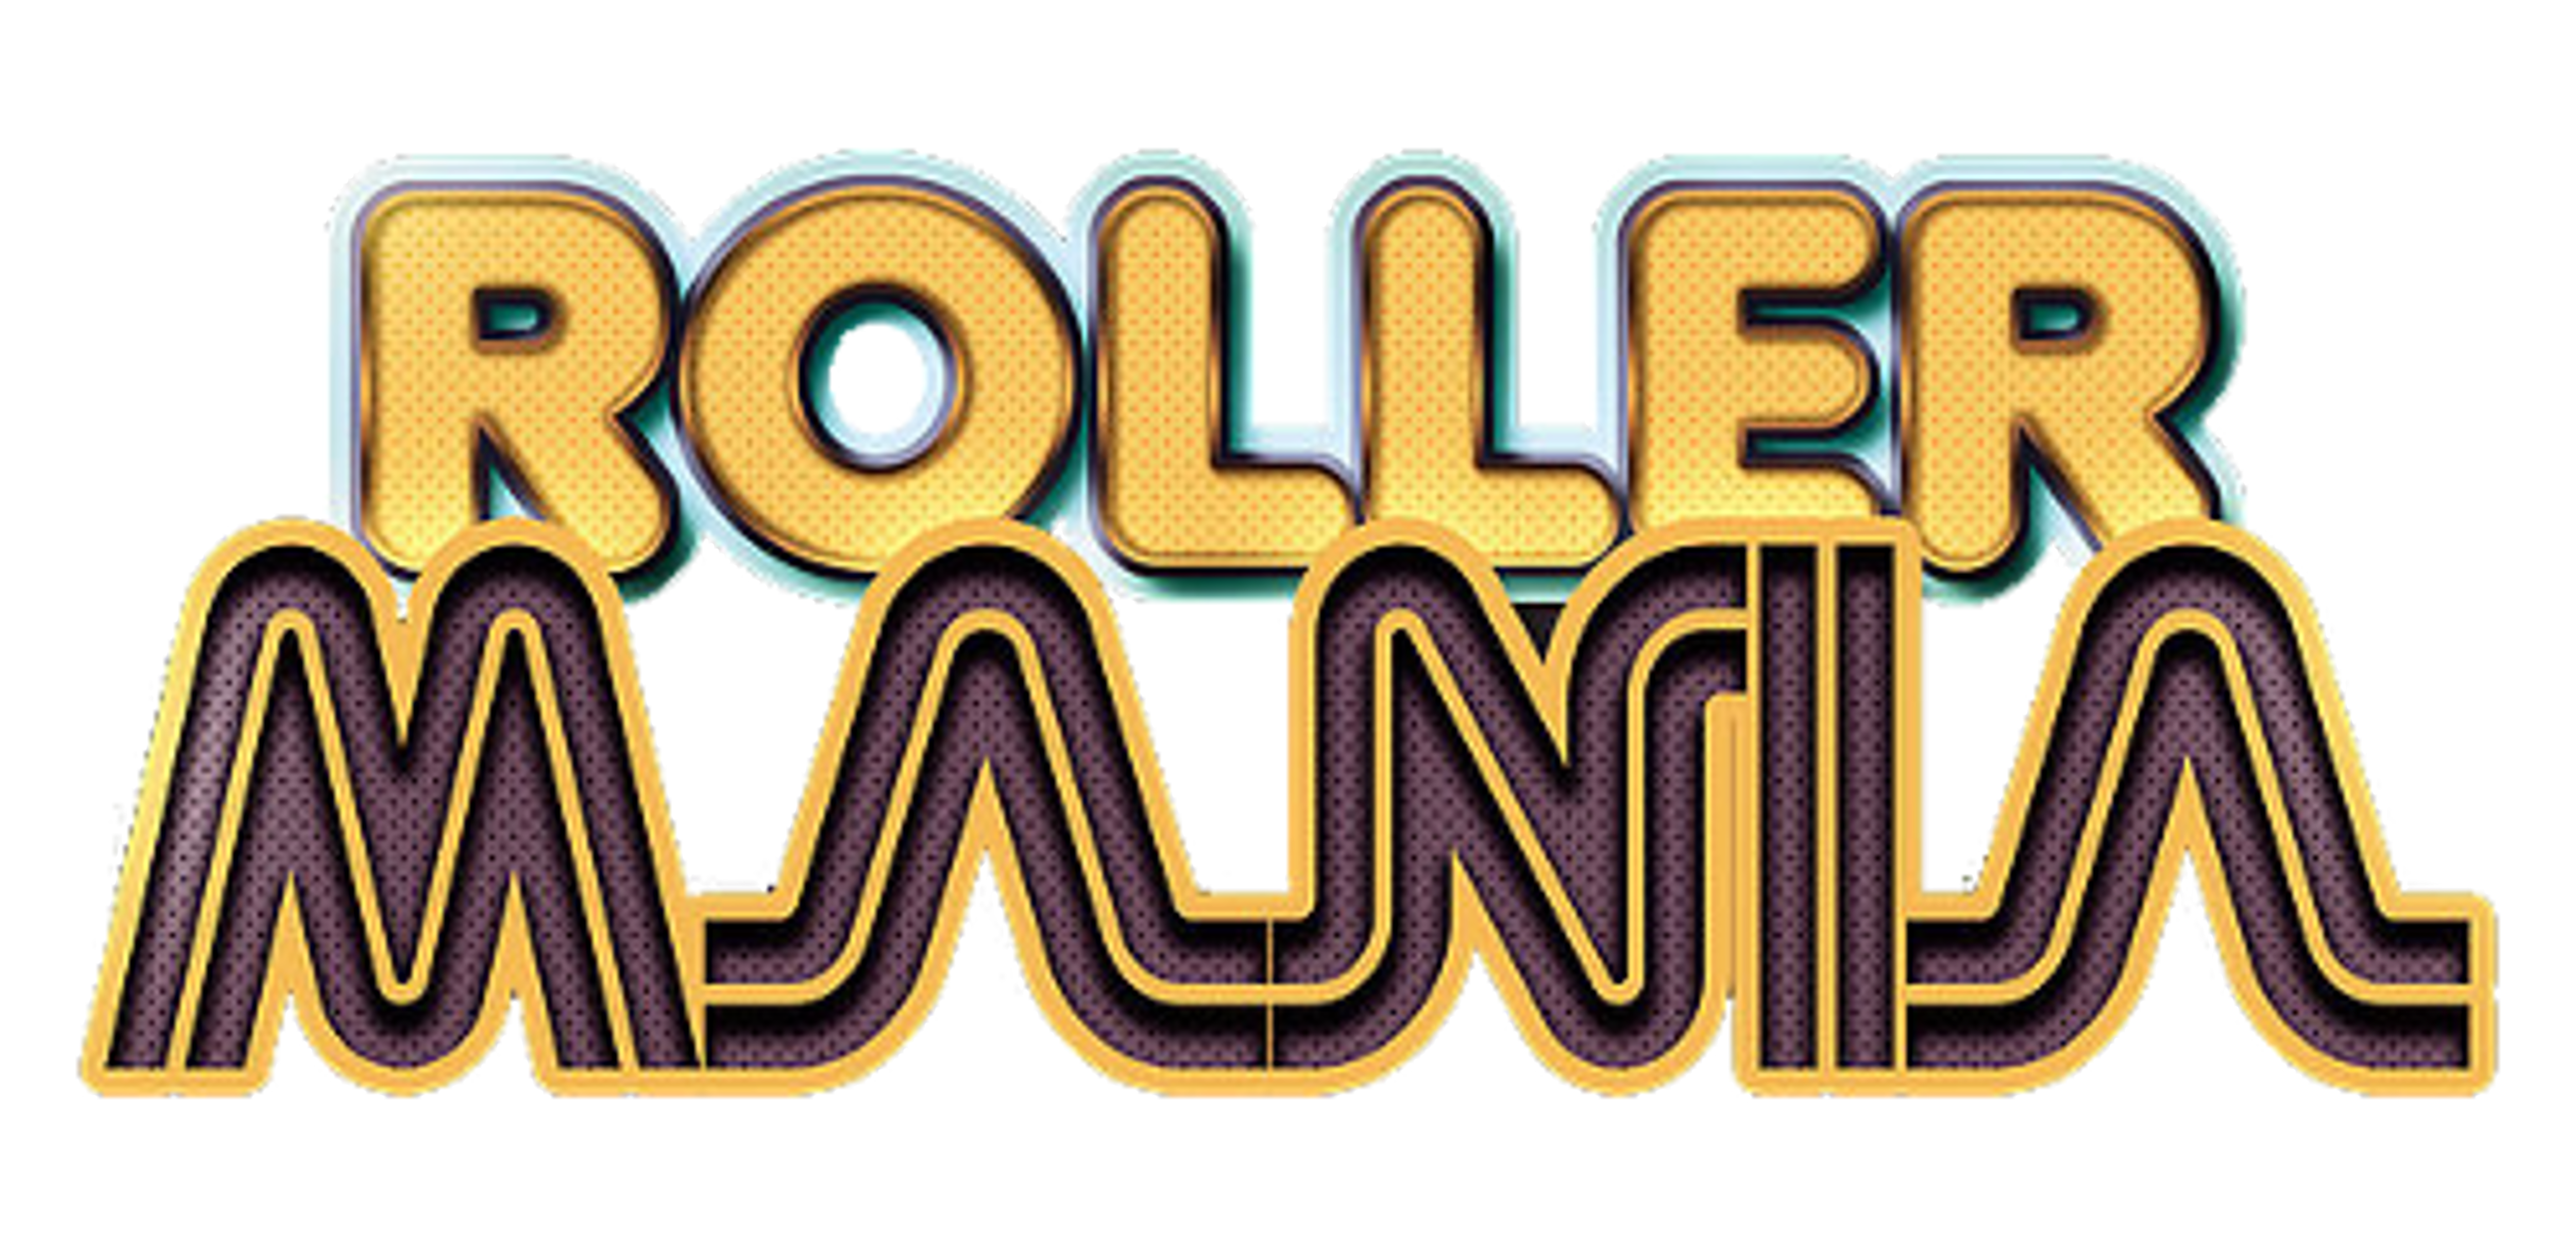 roller-logo Reduced to 5000 Width